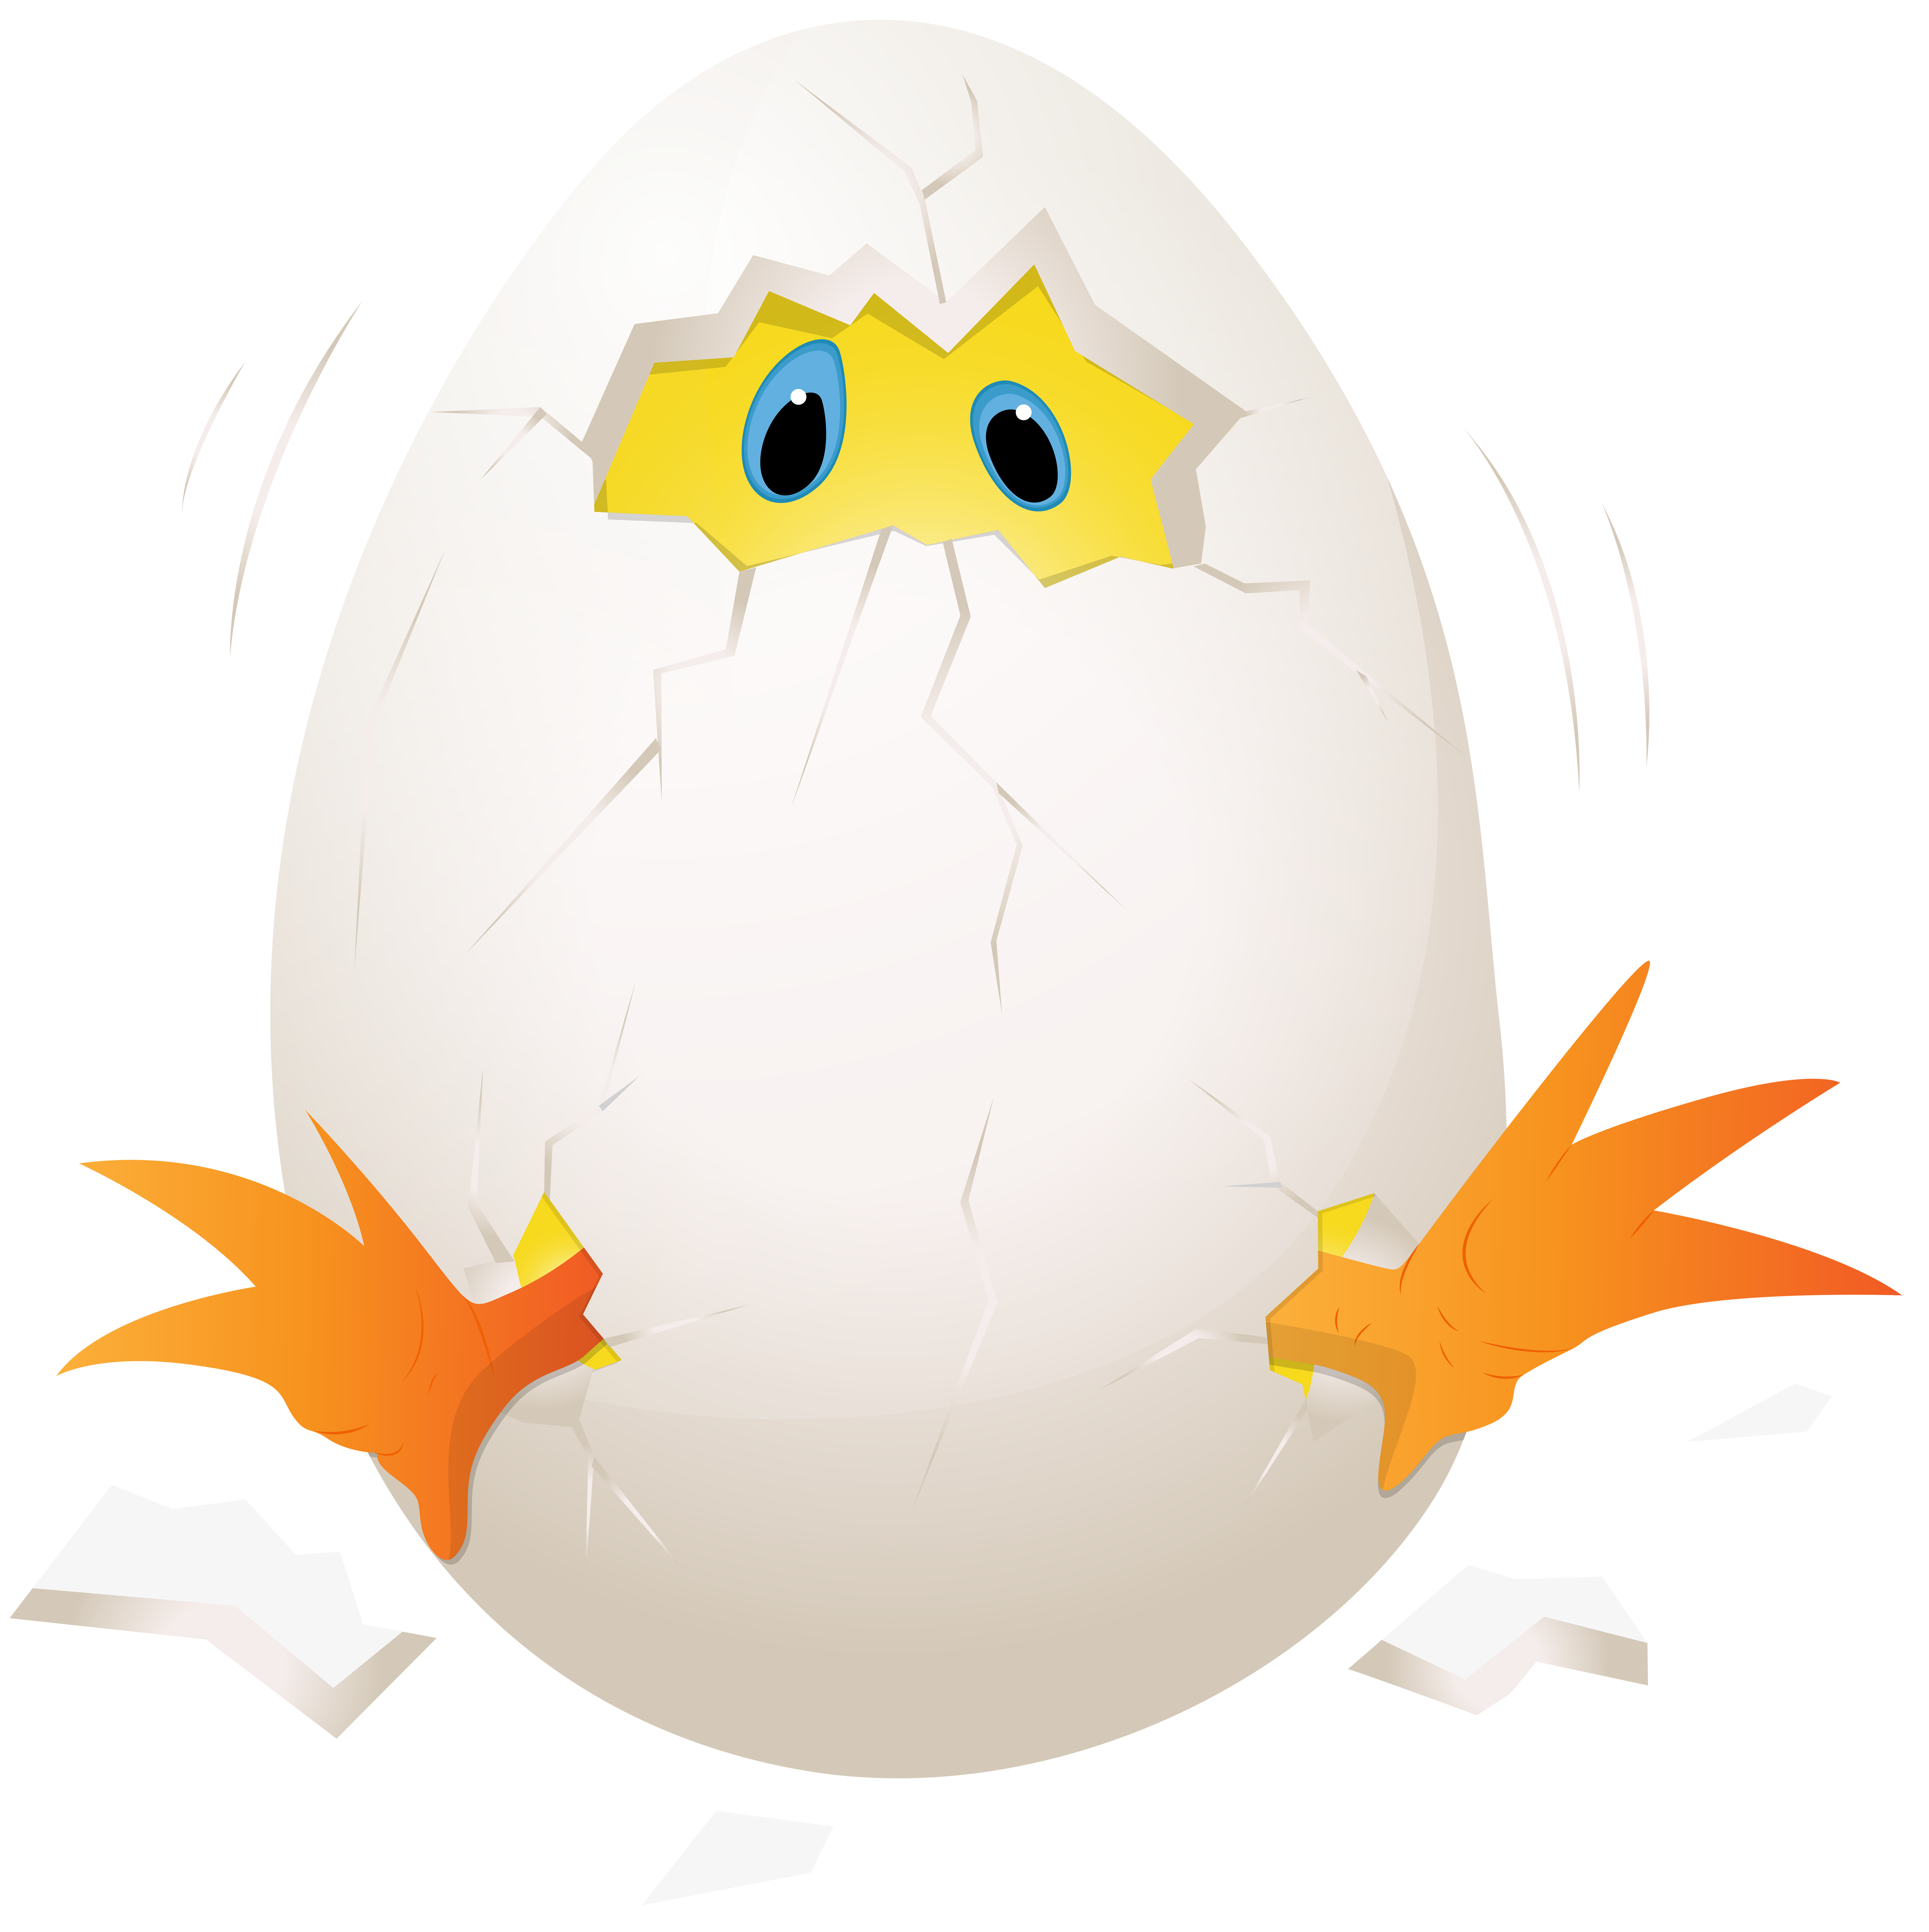 Easter chicken in png. Quail clipart quail egg